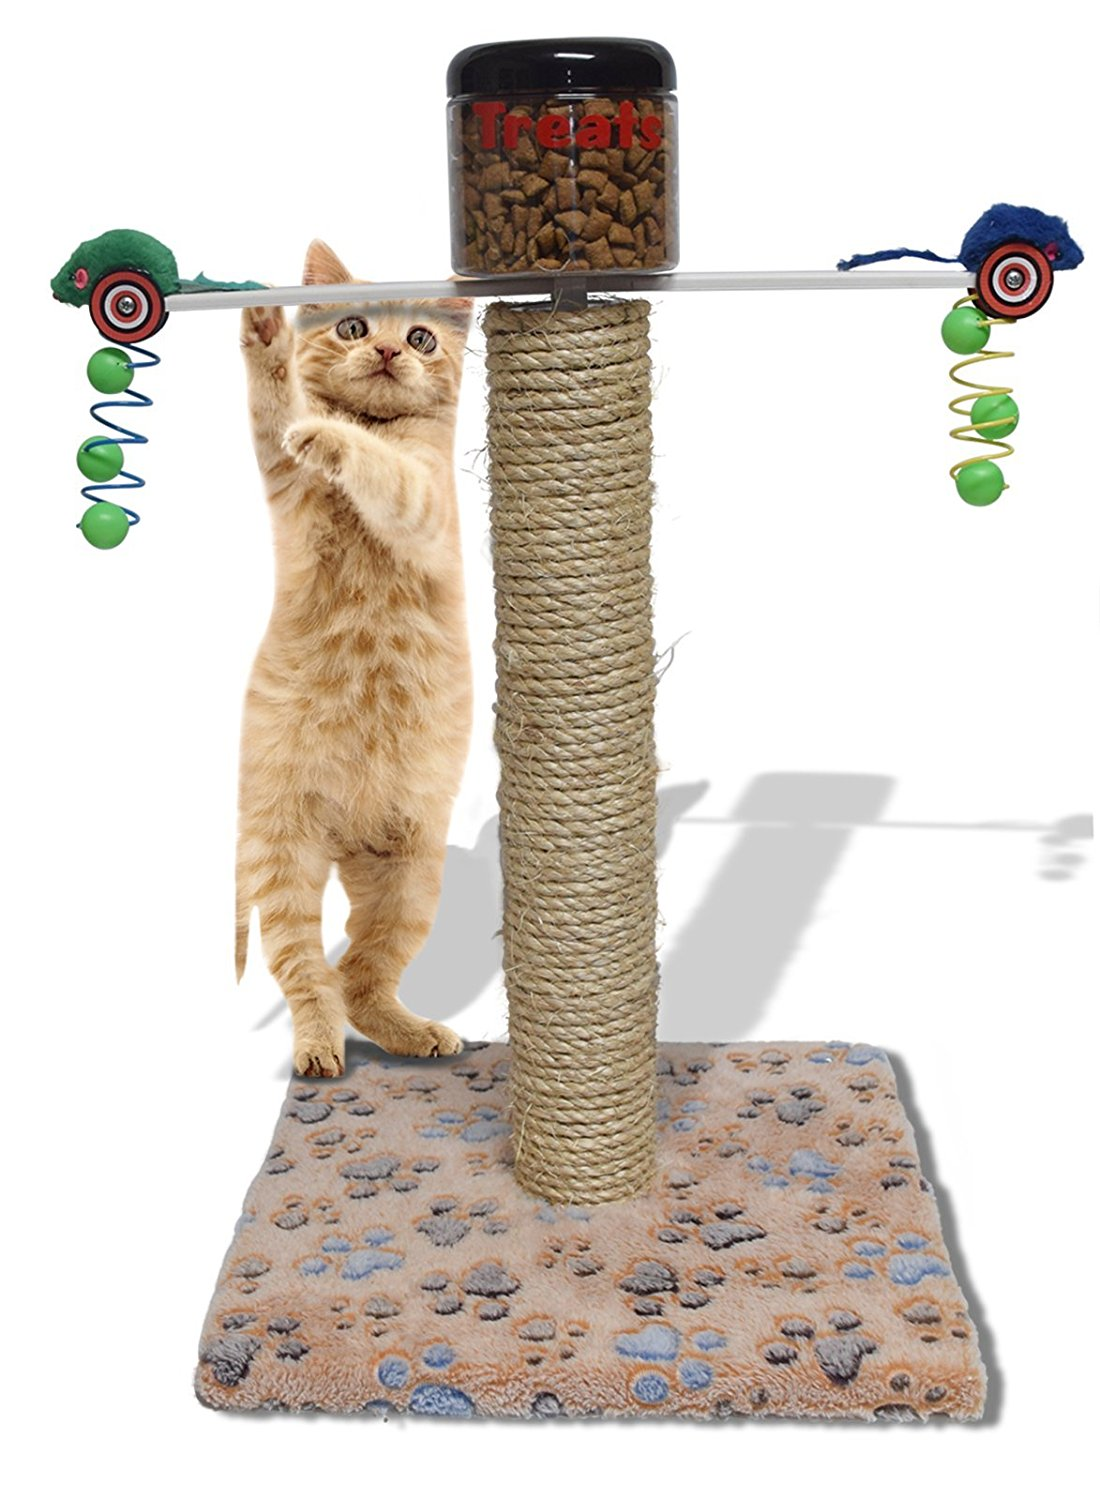 Cat Toy And Food Dispenser Weight Loss Exercise Interactive Station by Design With Vinyl